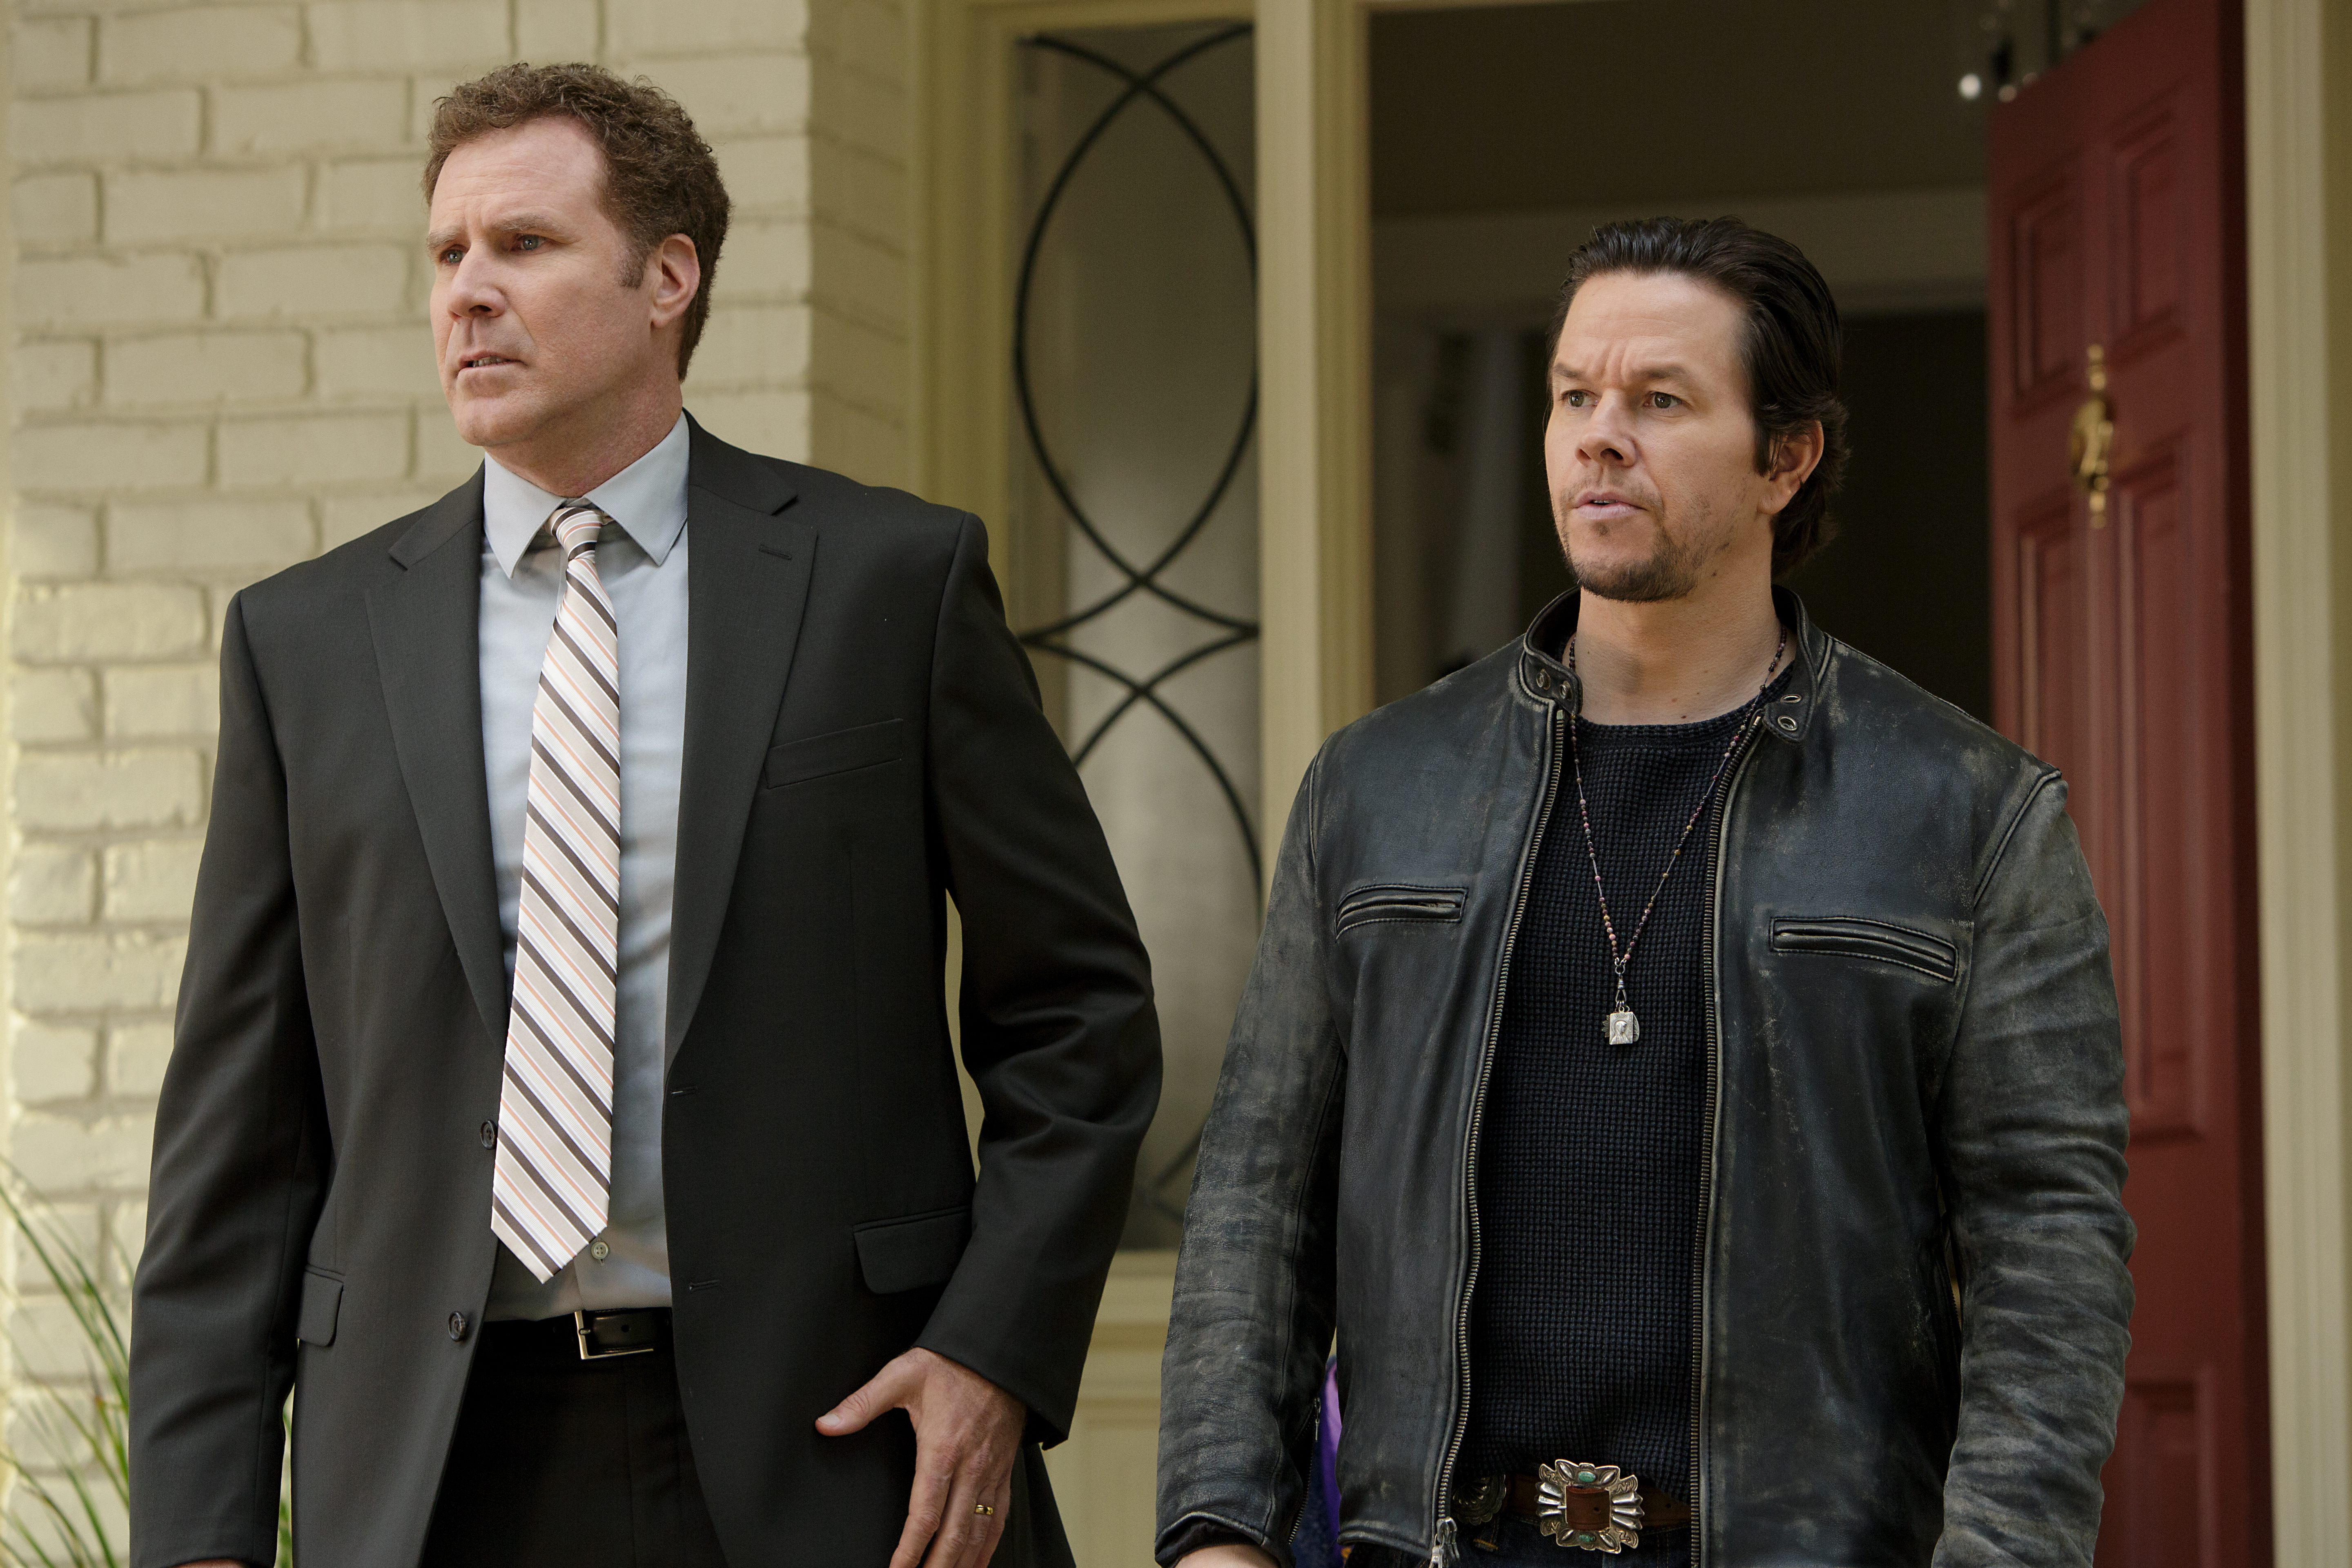 tan grande y jugando, netflix, dia del padre, Will Ferrell, Brad, Mark Wahlberg, Dusty, Daddy's Home, Paramount Pictures, Red Granite Pictures